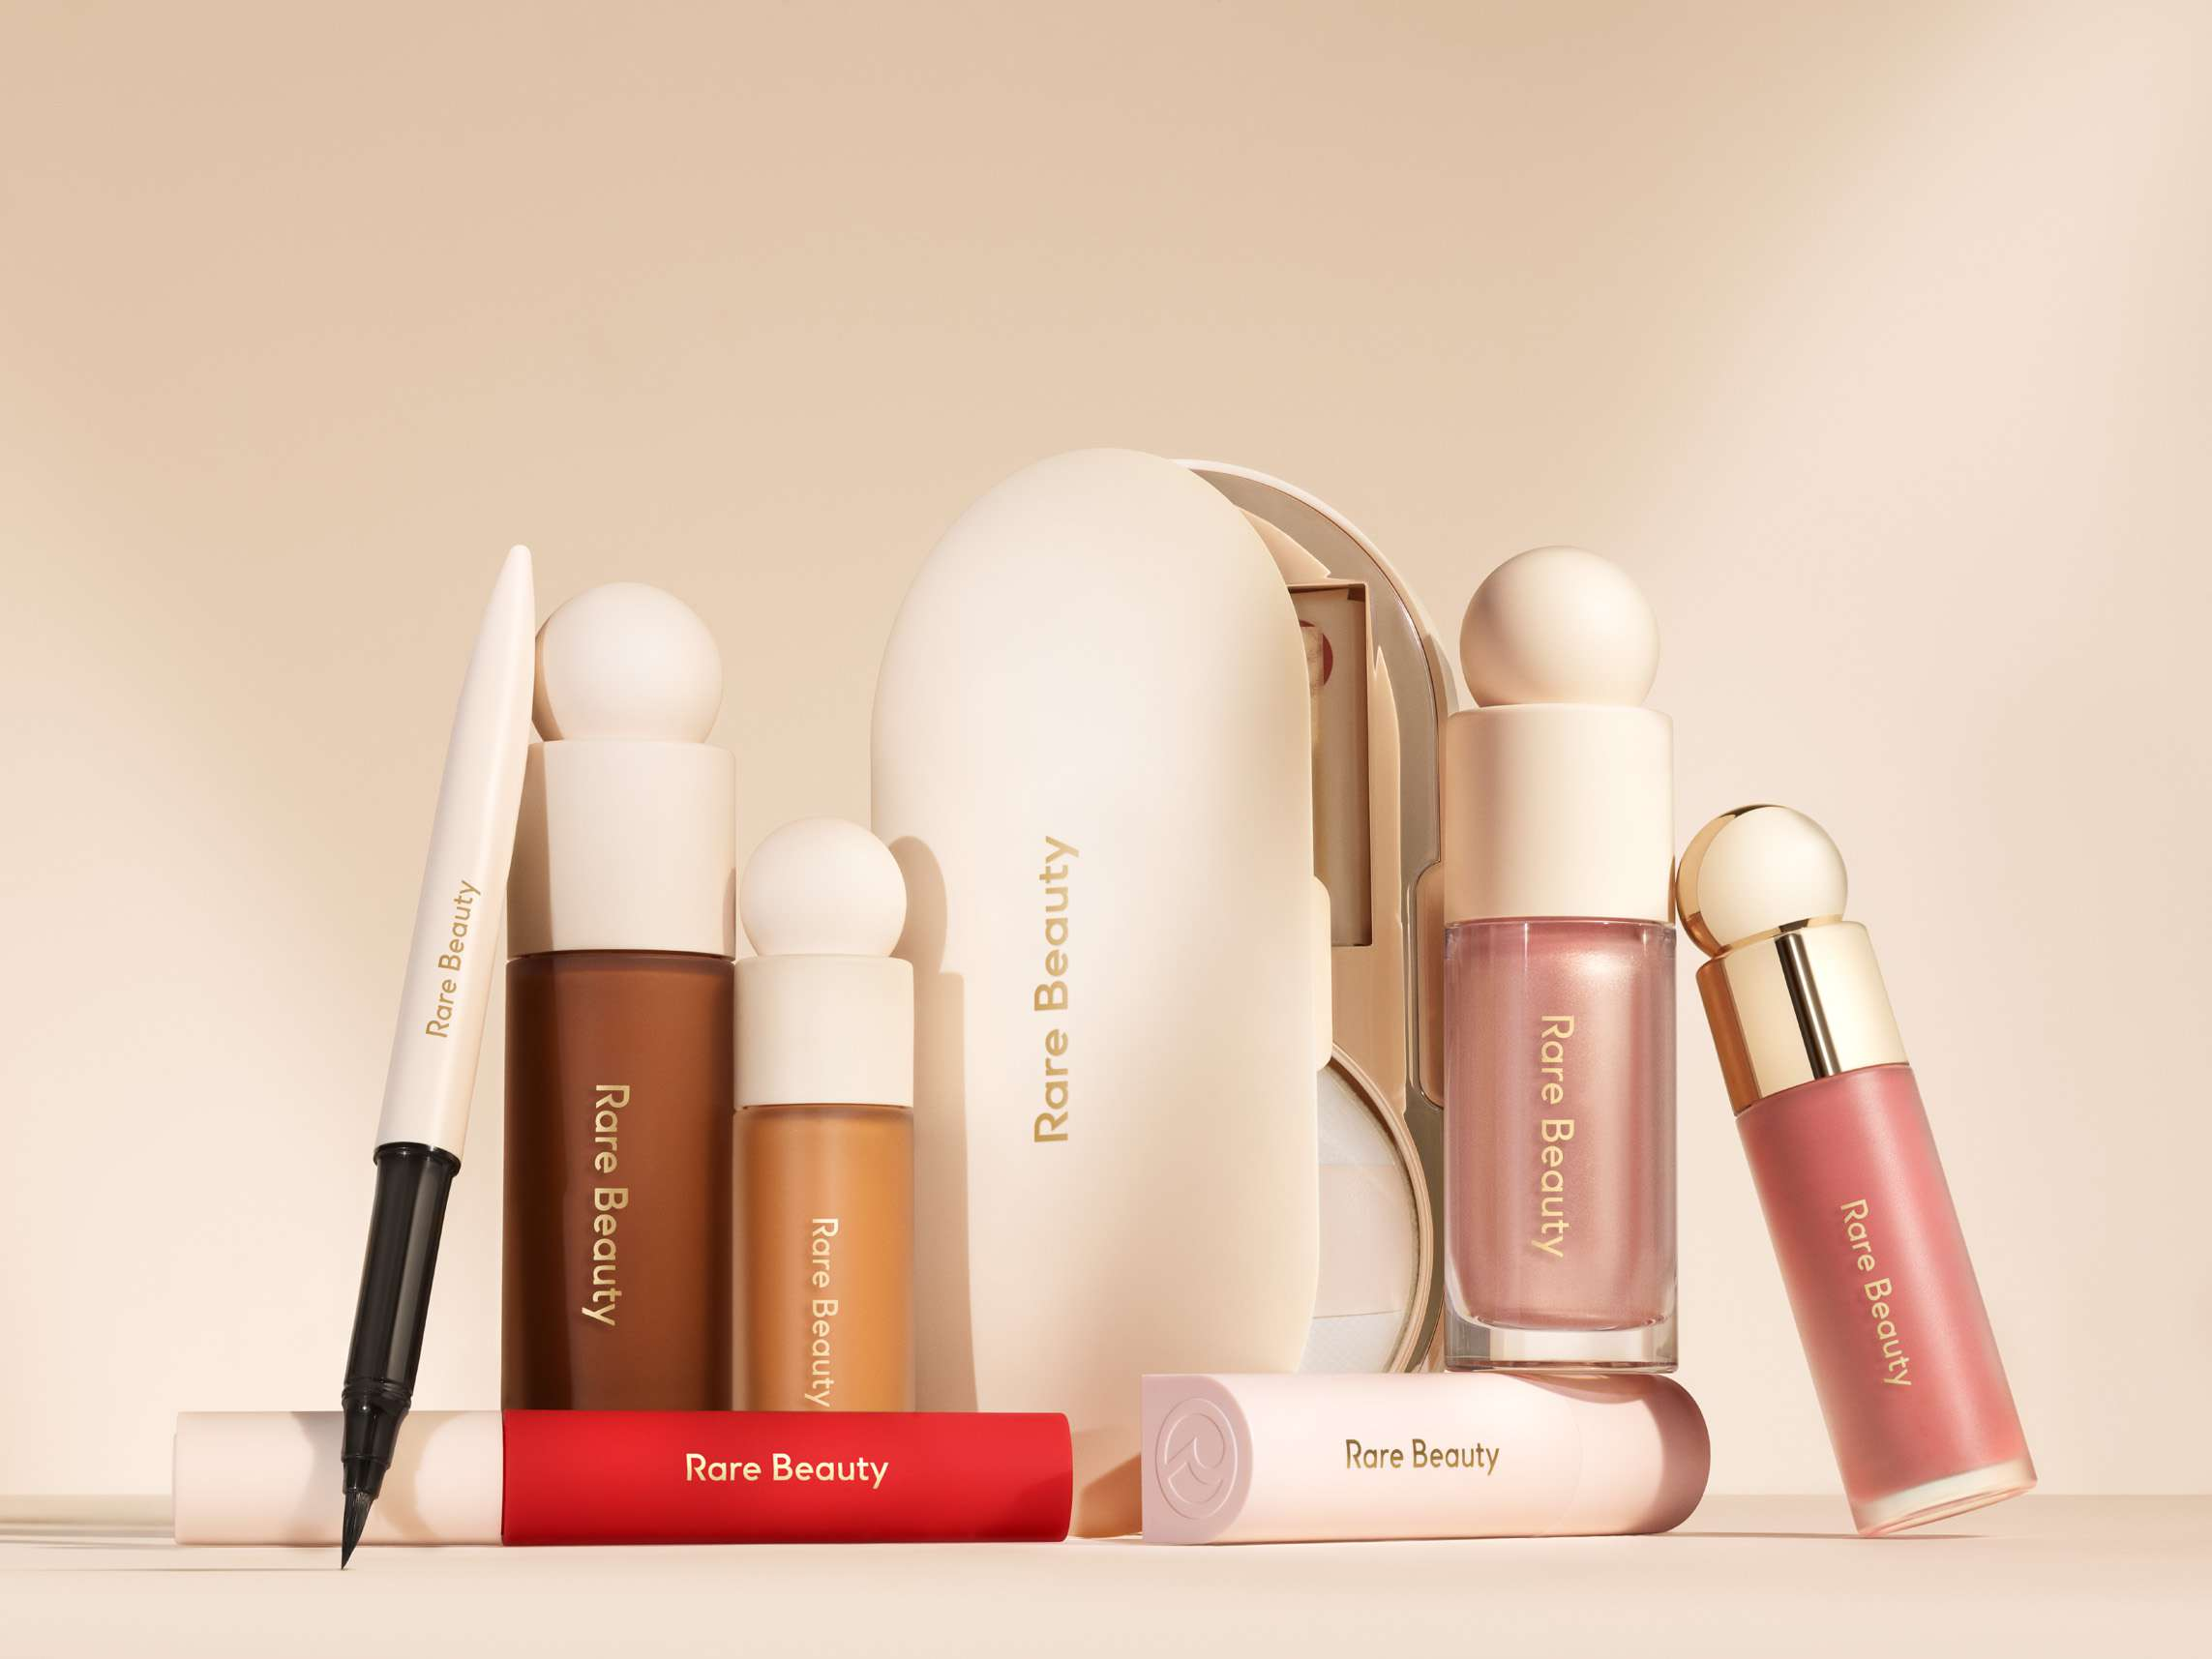 rare beauty product lineup